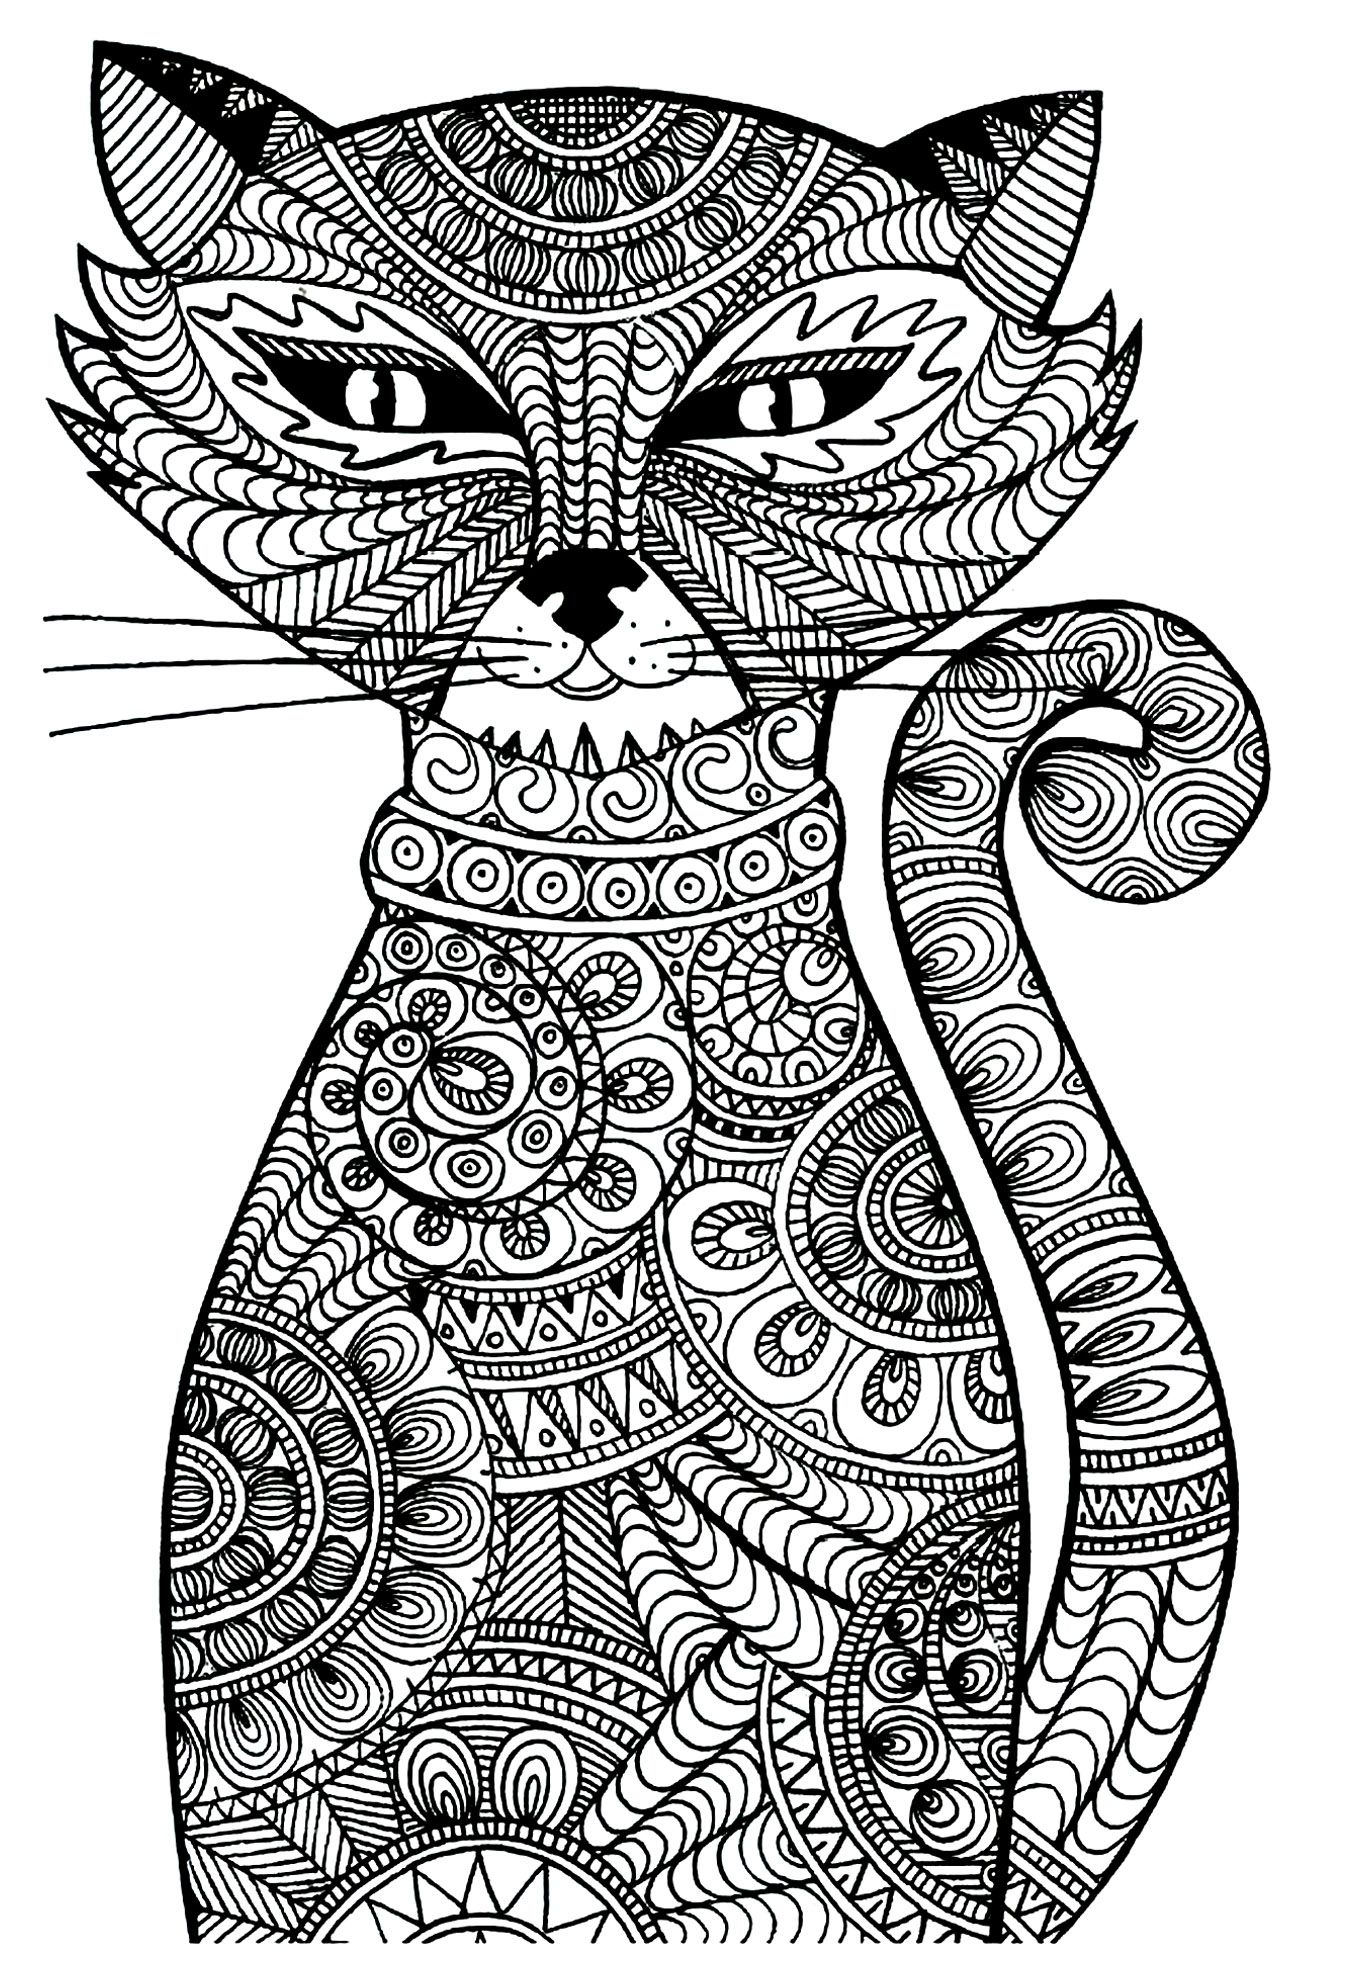 100 Free Coloring Pages For Adults And Children 100 Free Cat